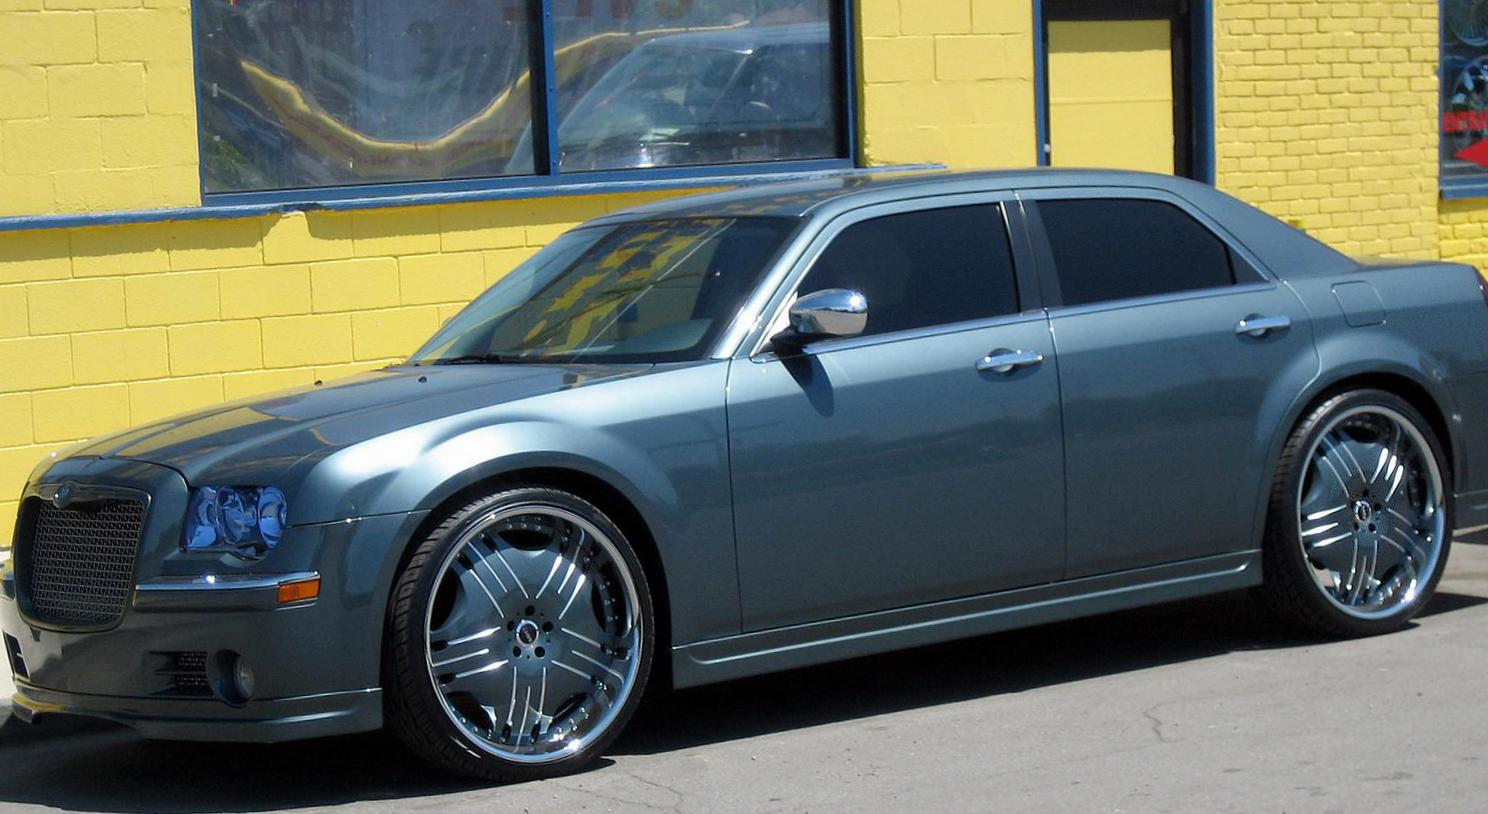 Chrysler 300C spec hatchback